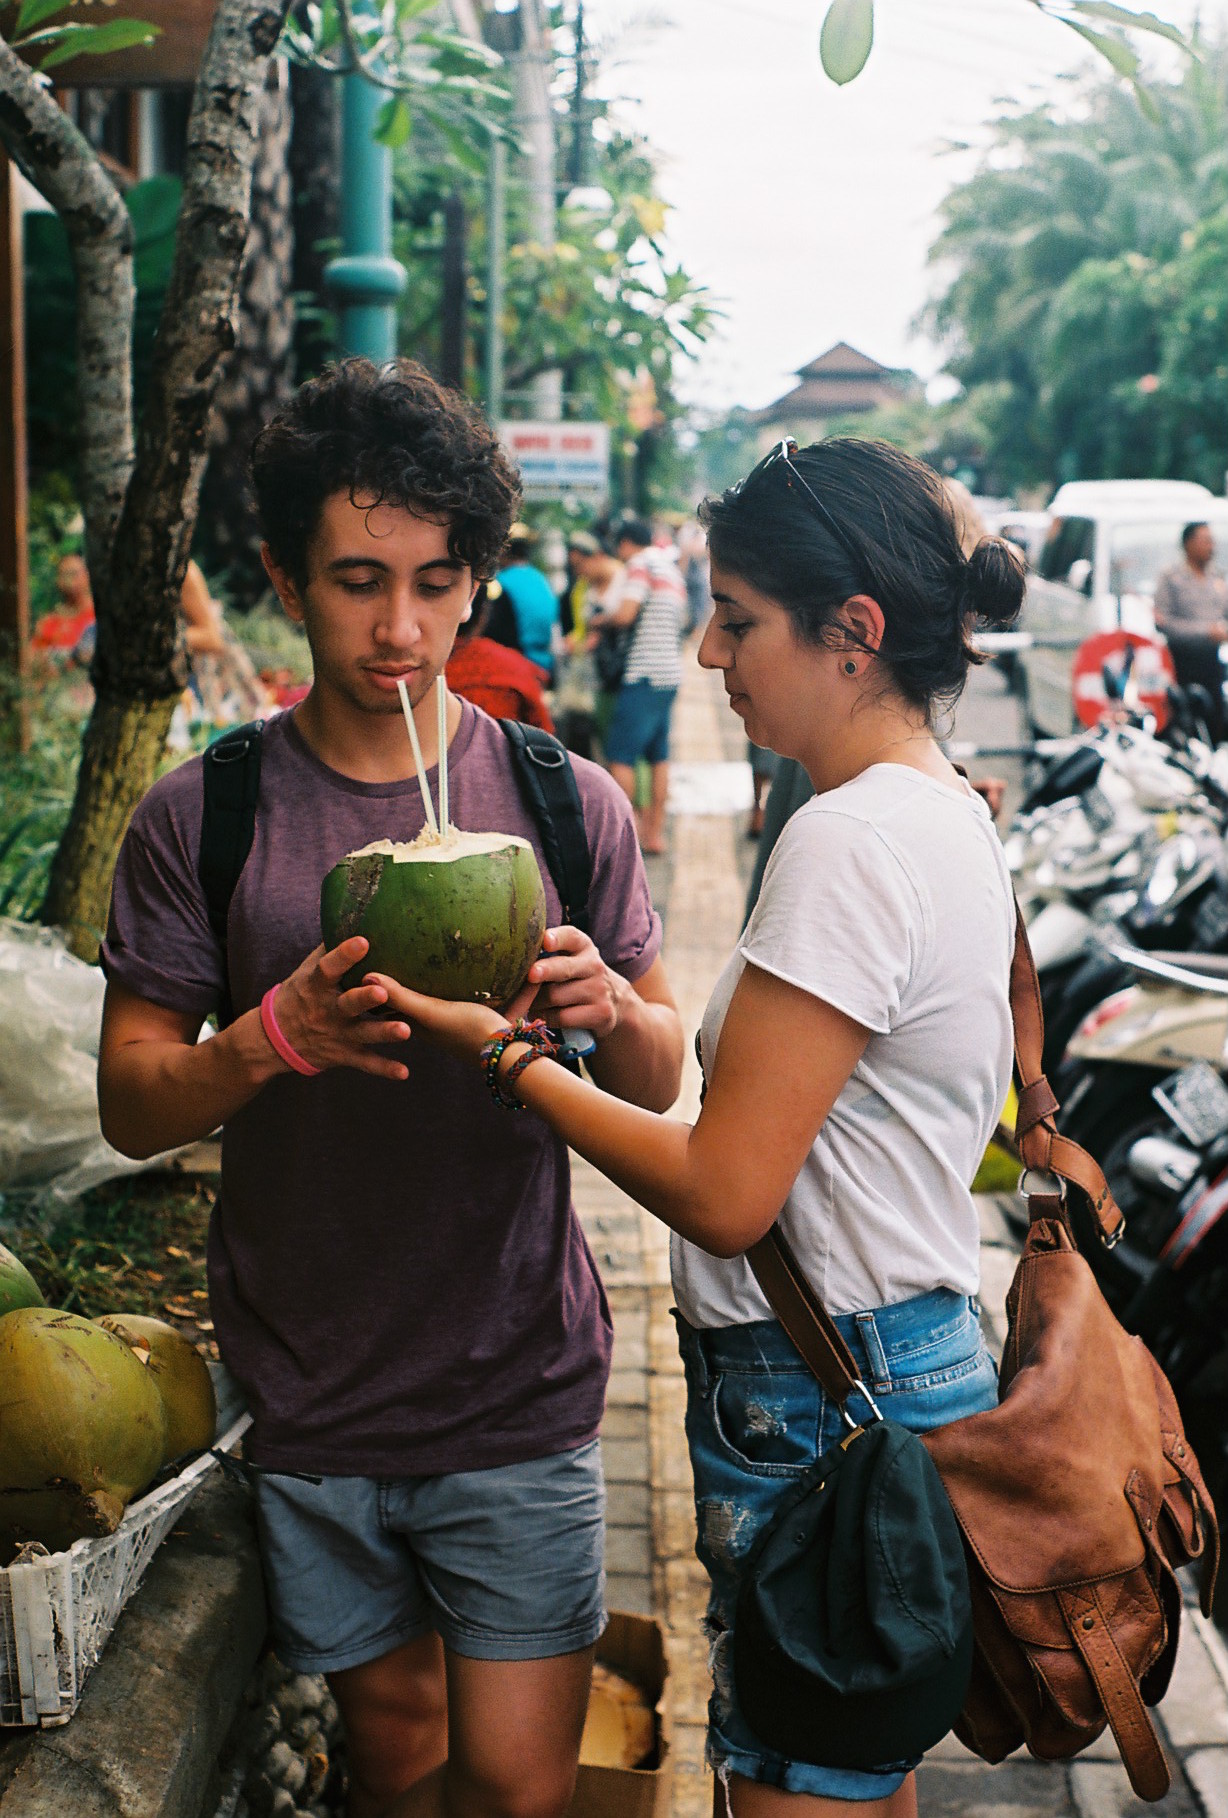 Coconut Water Ubud Bali Analogue Travel Photographer